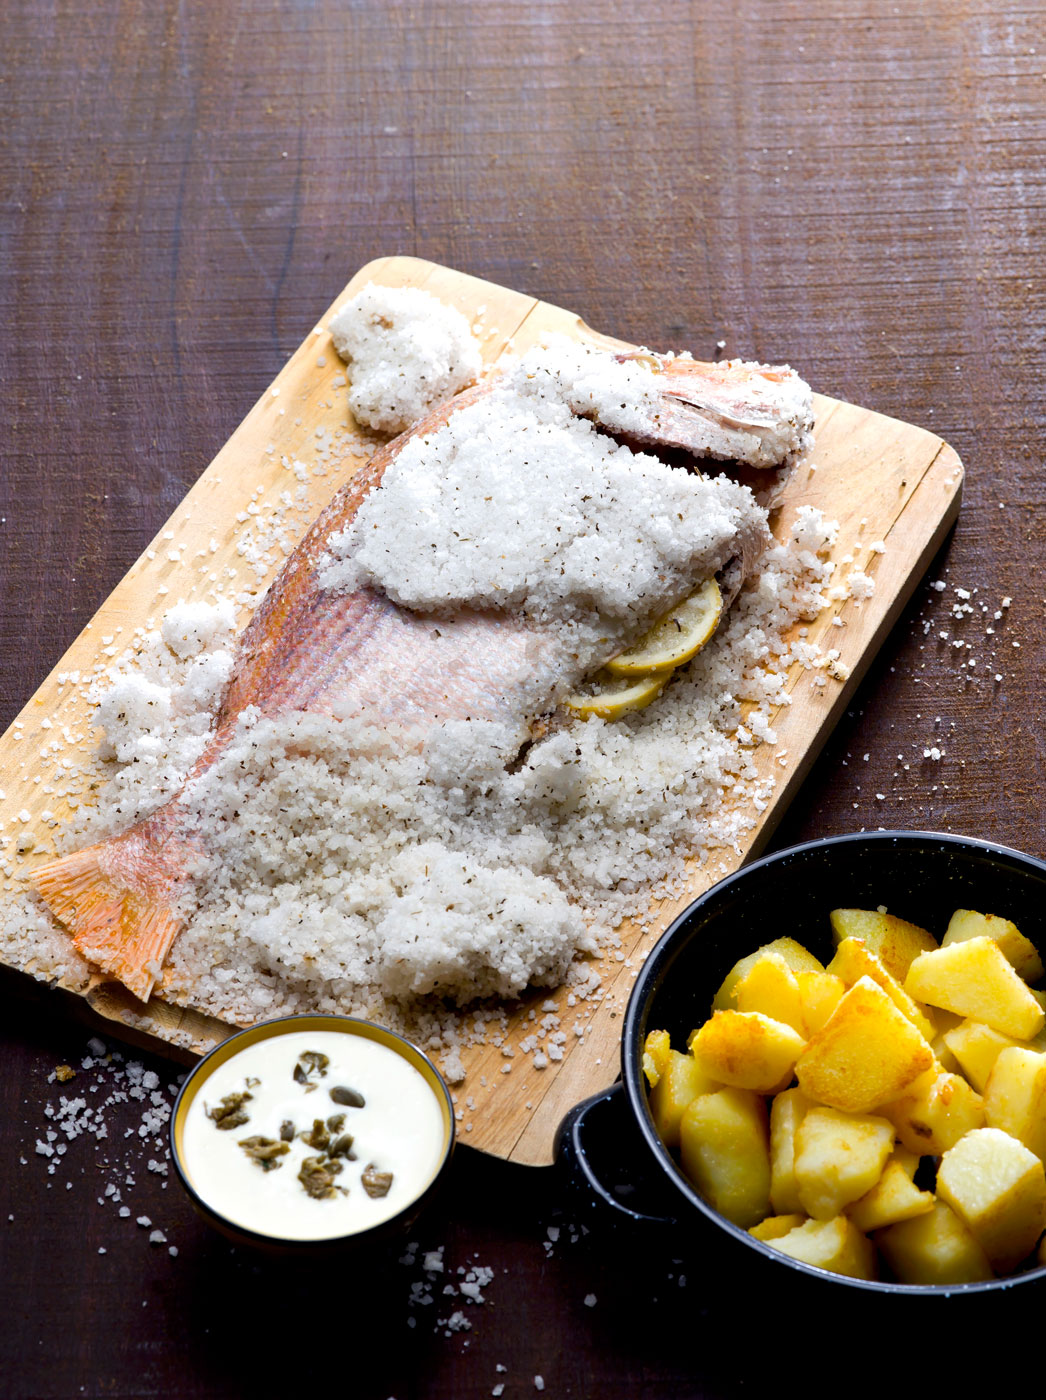 A whole fish in the process of being salt-crusted.